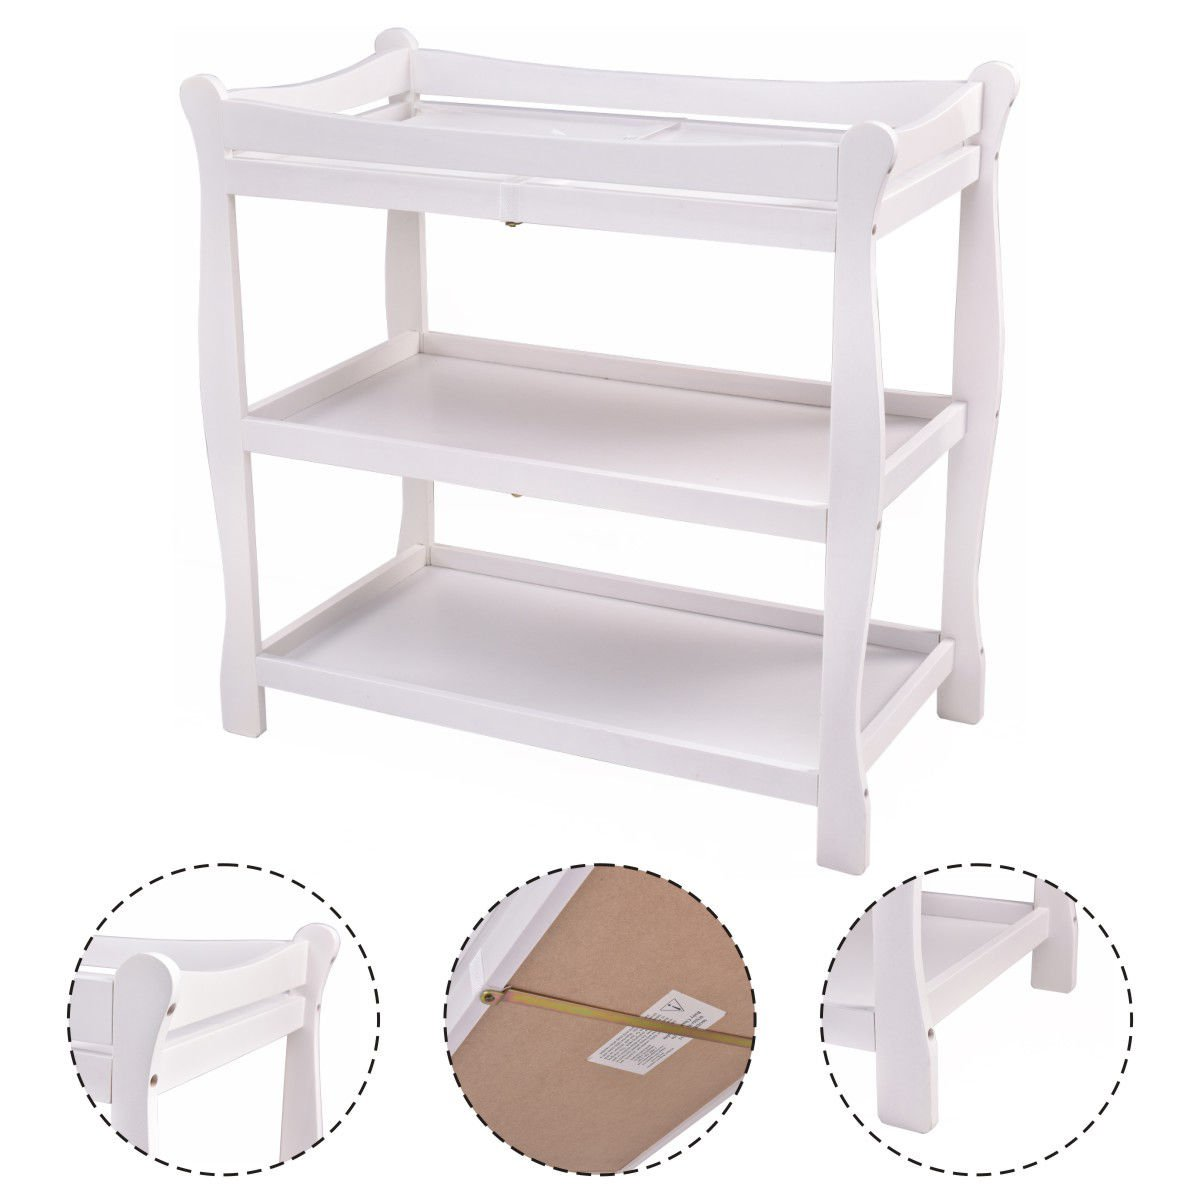 New MTN-G White Sleigh Style Baby Changing Table Infant Newborn Nursery Diaper Station